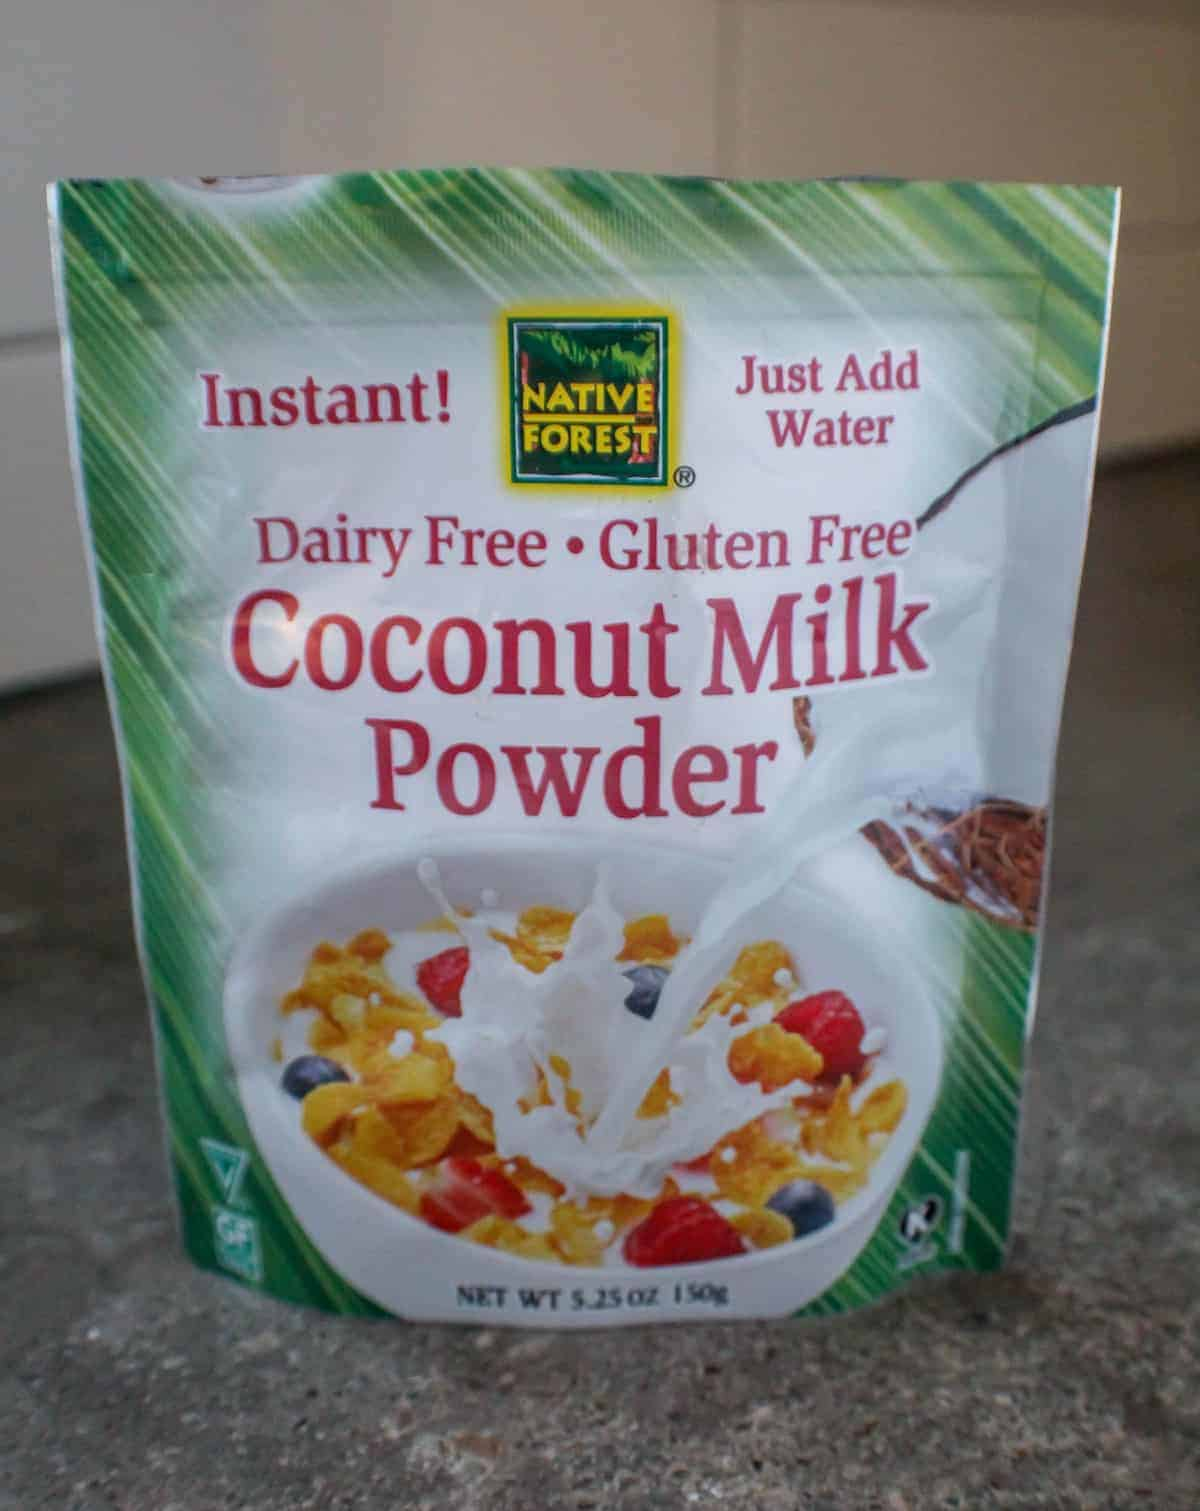 Bag of coconut milk powder